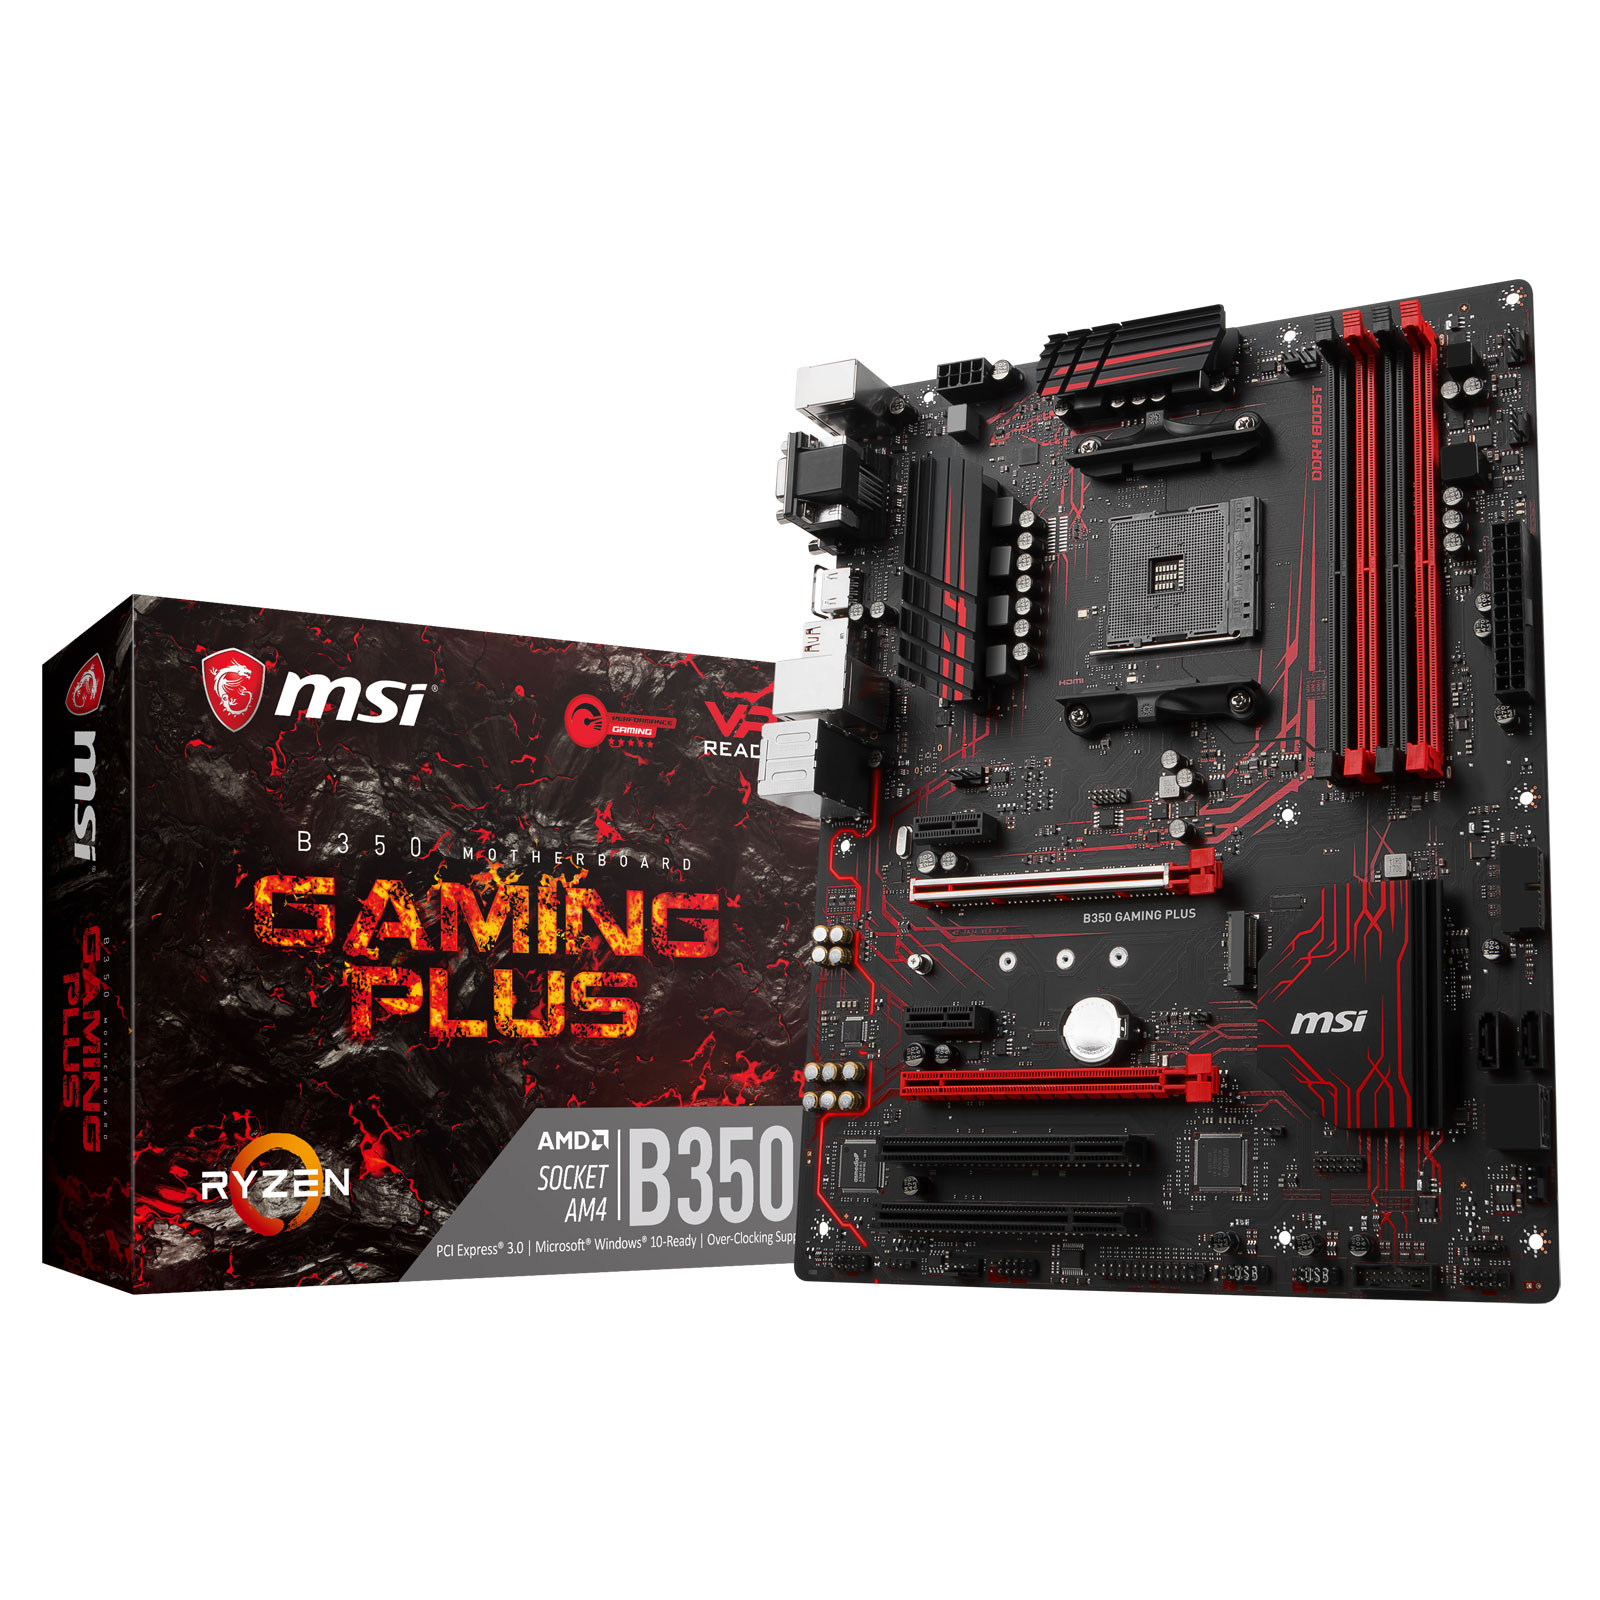 Carte mère MSI B350 GAMING PLUS Carte mère ATX Socket AM4 AMD B350 - 4x DDR4 - SATA 6Gb/s + M.2 - USB 3.0 - 2x PCI-Express 3.0 16x